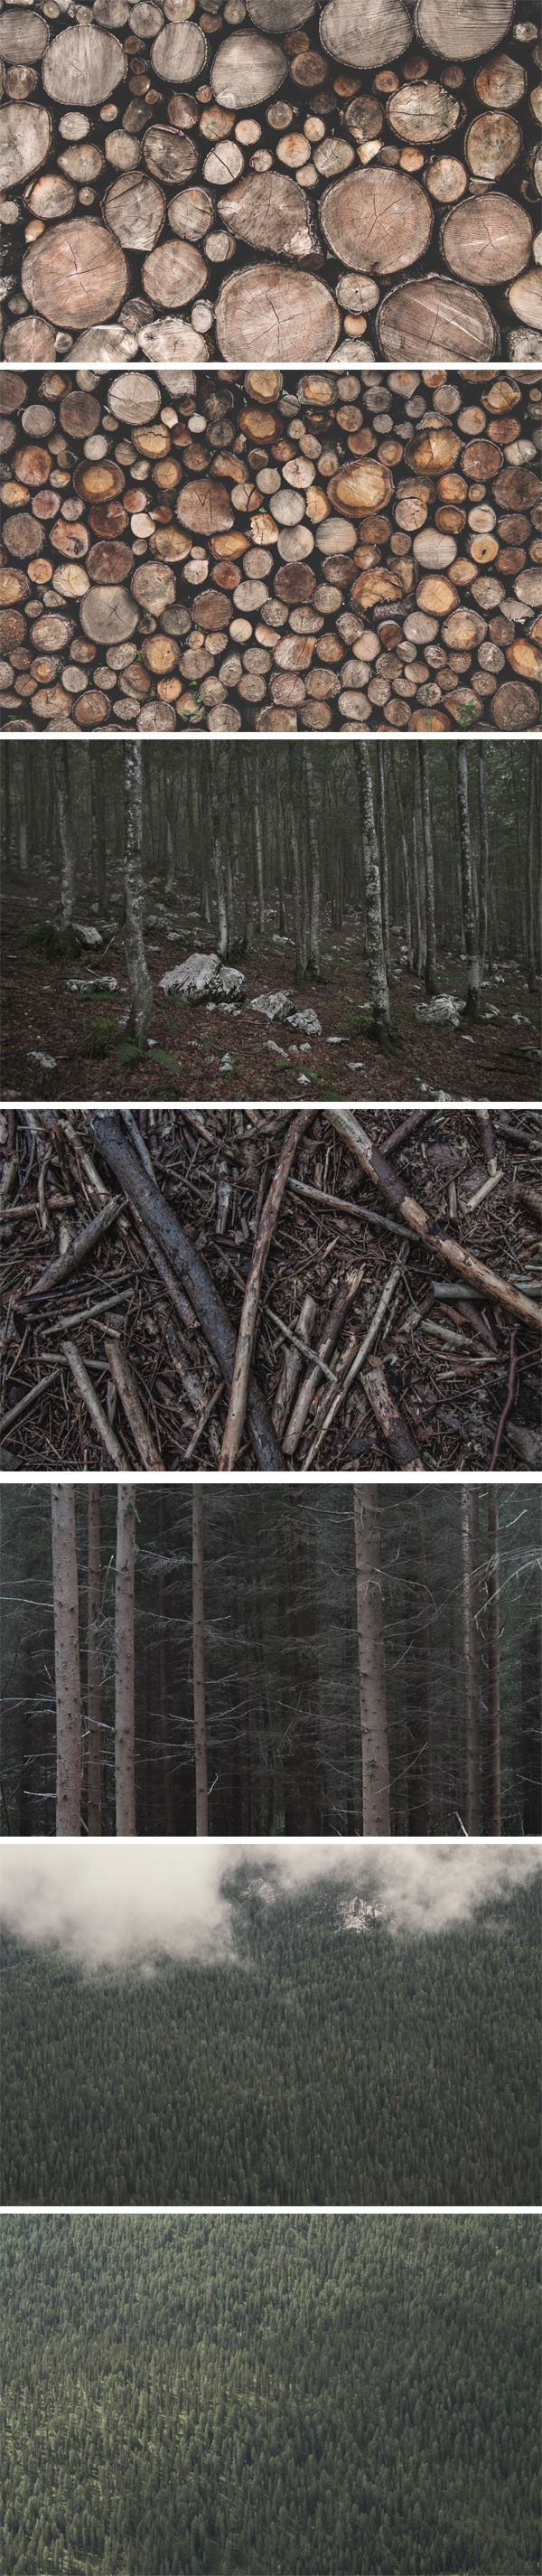 Here is another collection of high-resolution photos of wood and forests I've put together for you guys. Just as the previous...